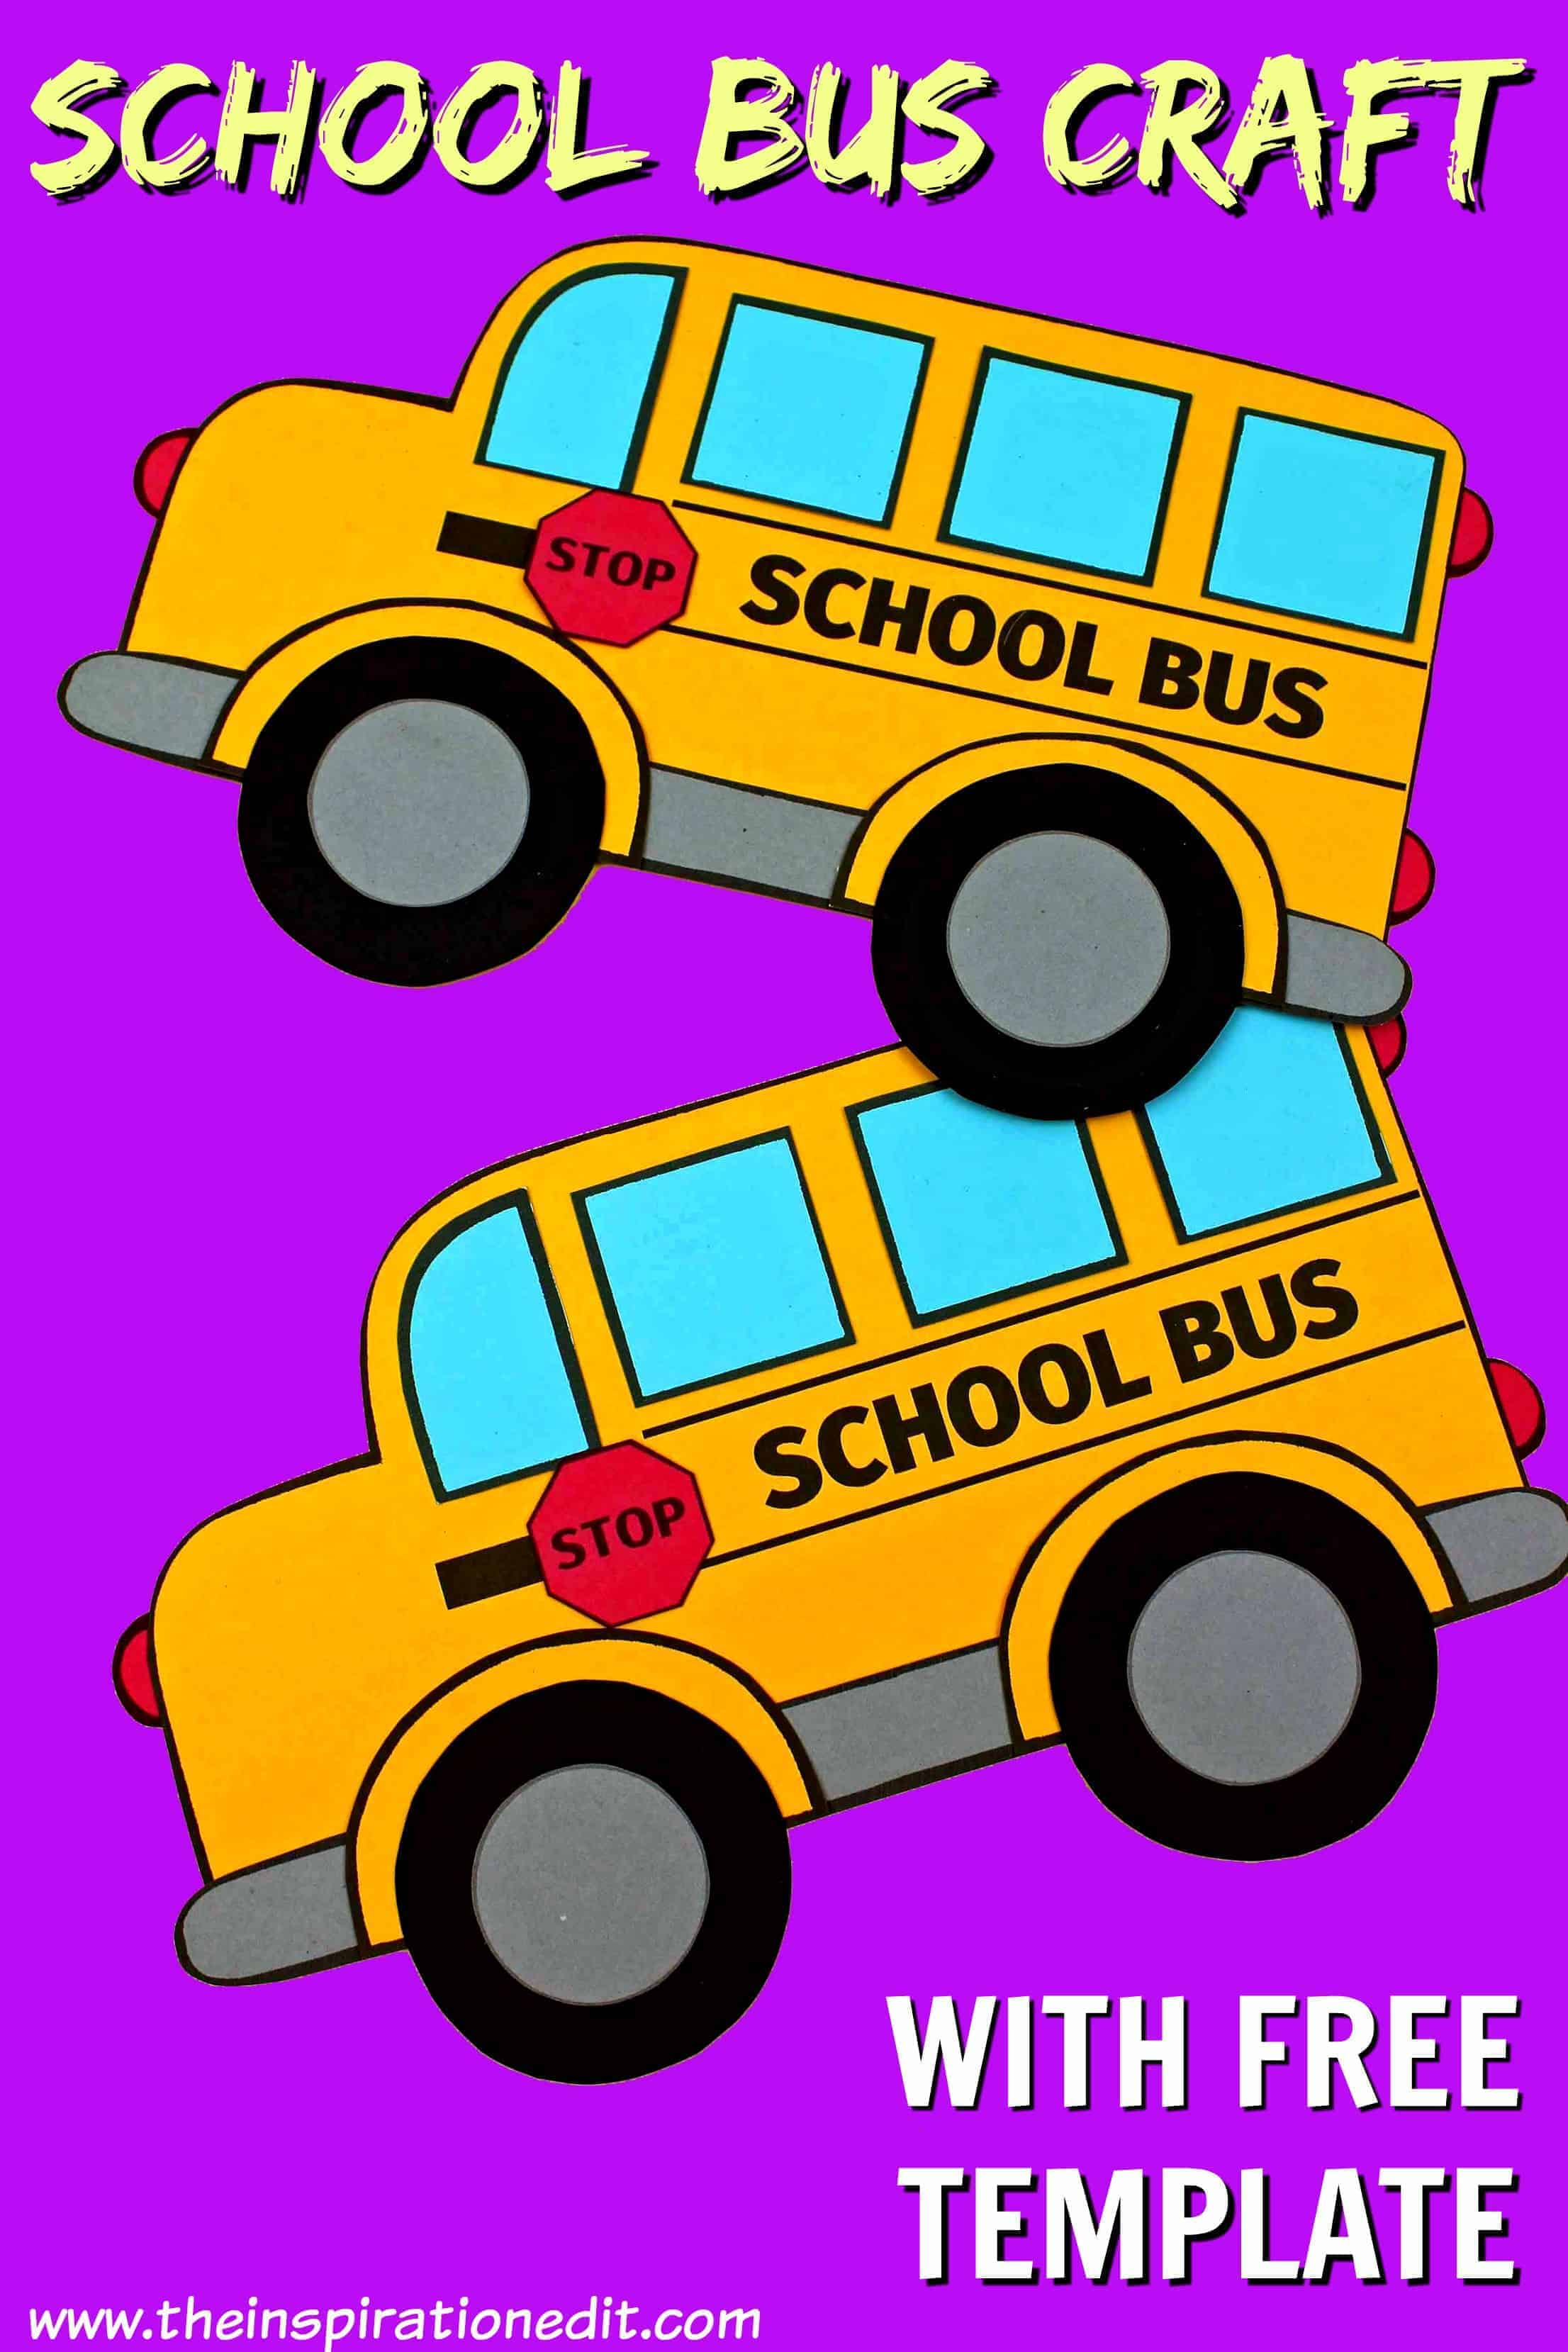 School Bus Template And Craft Idea For Back To School